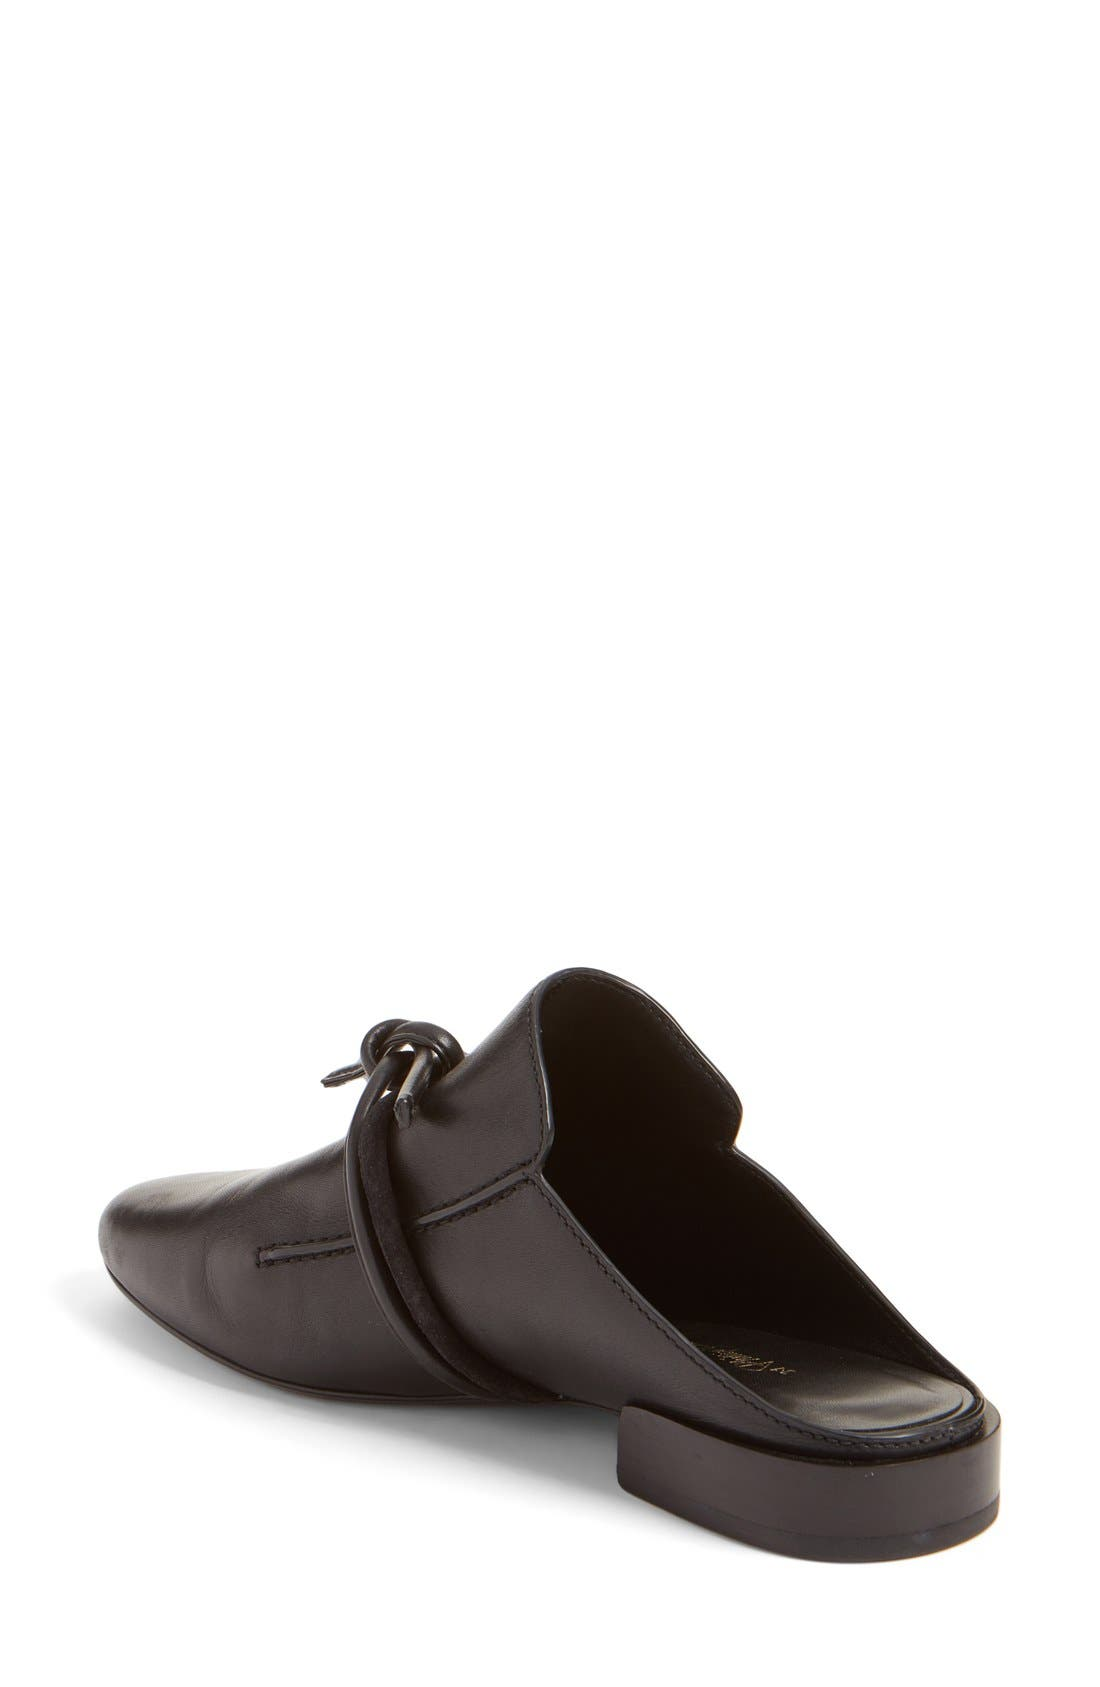 Alternate Image 2  - 3.1 Phillip Lim 'Louie' Mule Loafer (Women)